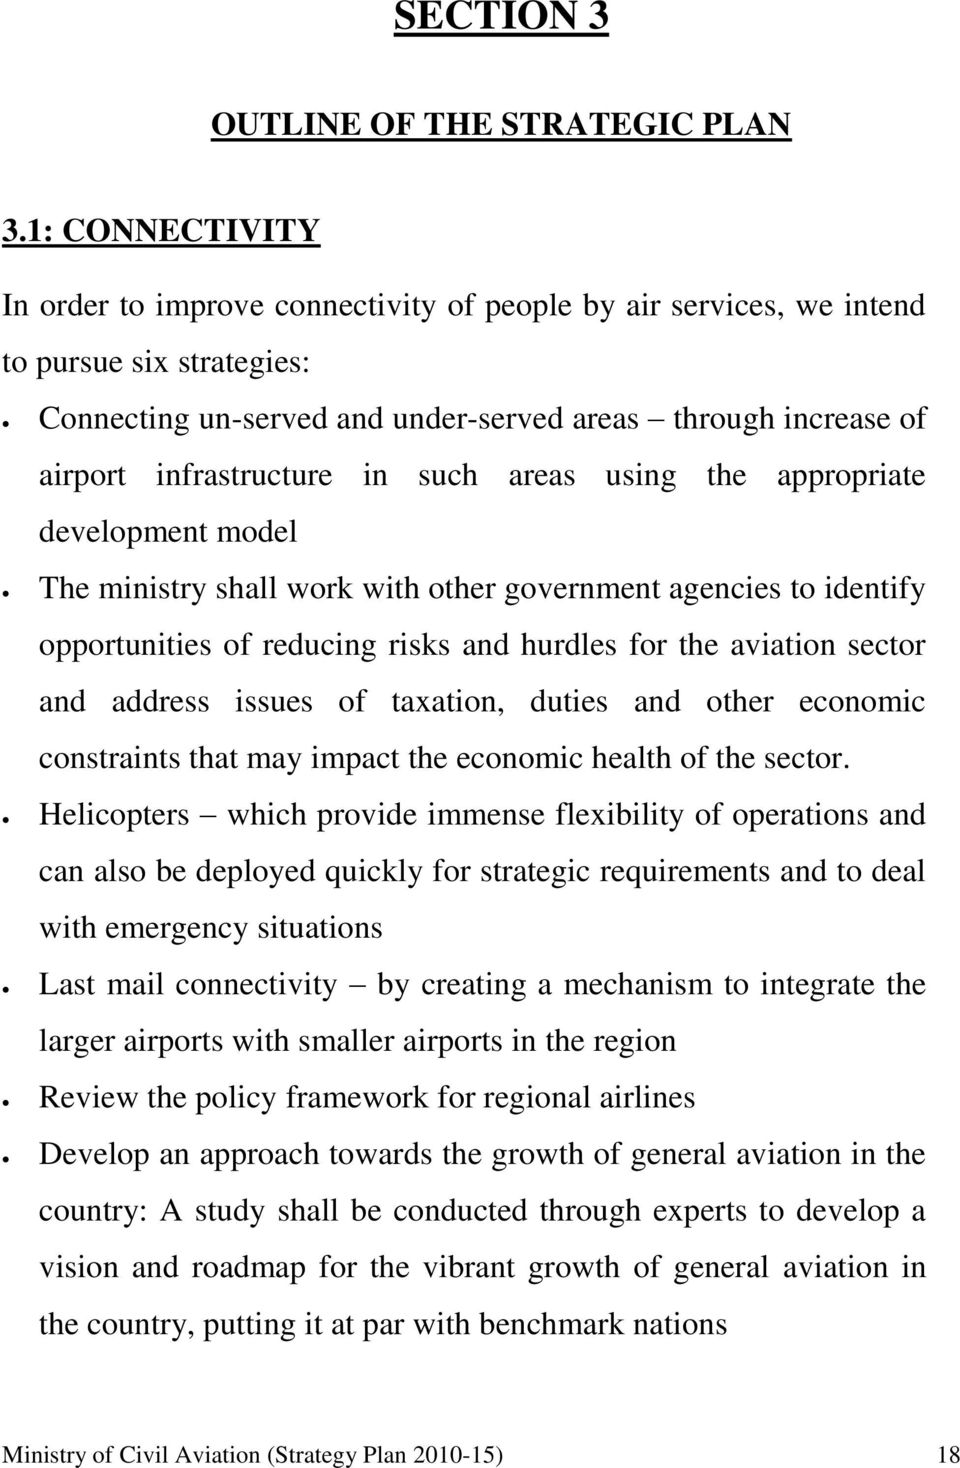 in such areas using the appropriate development model The ministry shall work with other government agencies to identify opportunities of reducing risks and hurdles for the aviation sector and